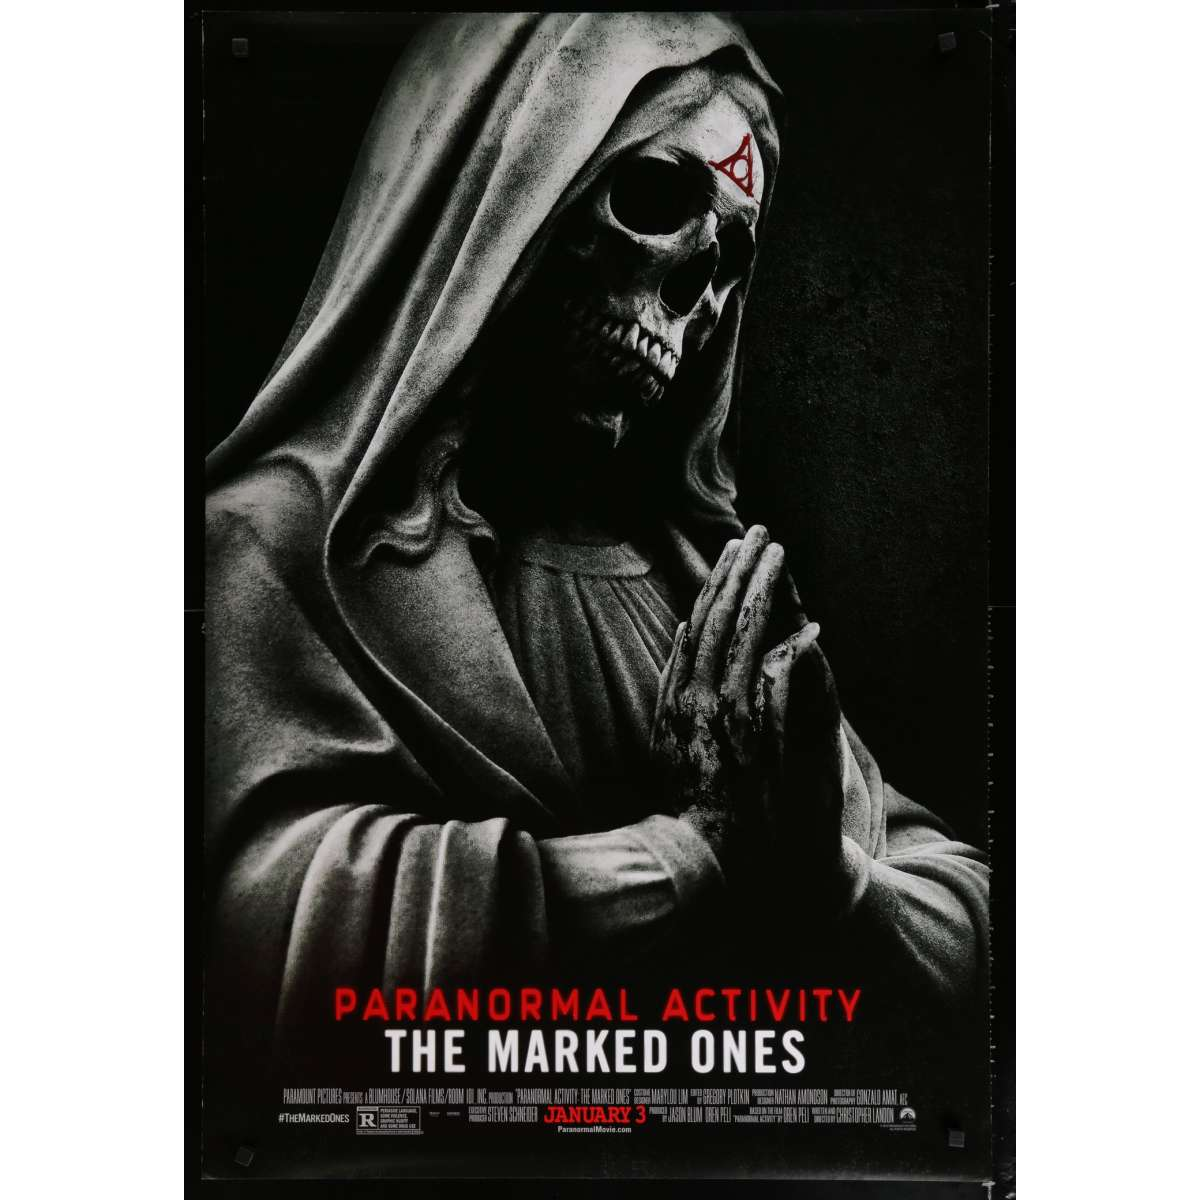 Paranormal Activity: The Marked Ones - Wikipedia |Paranormal Activity The Marked Ones 2014